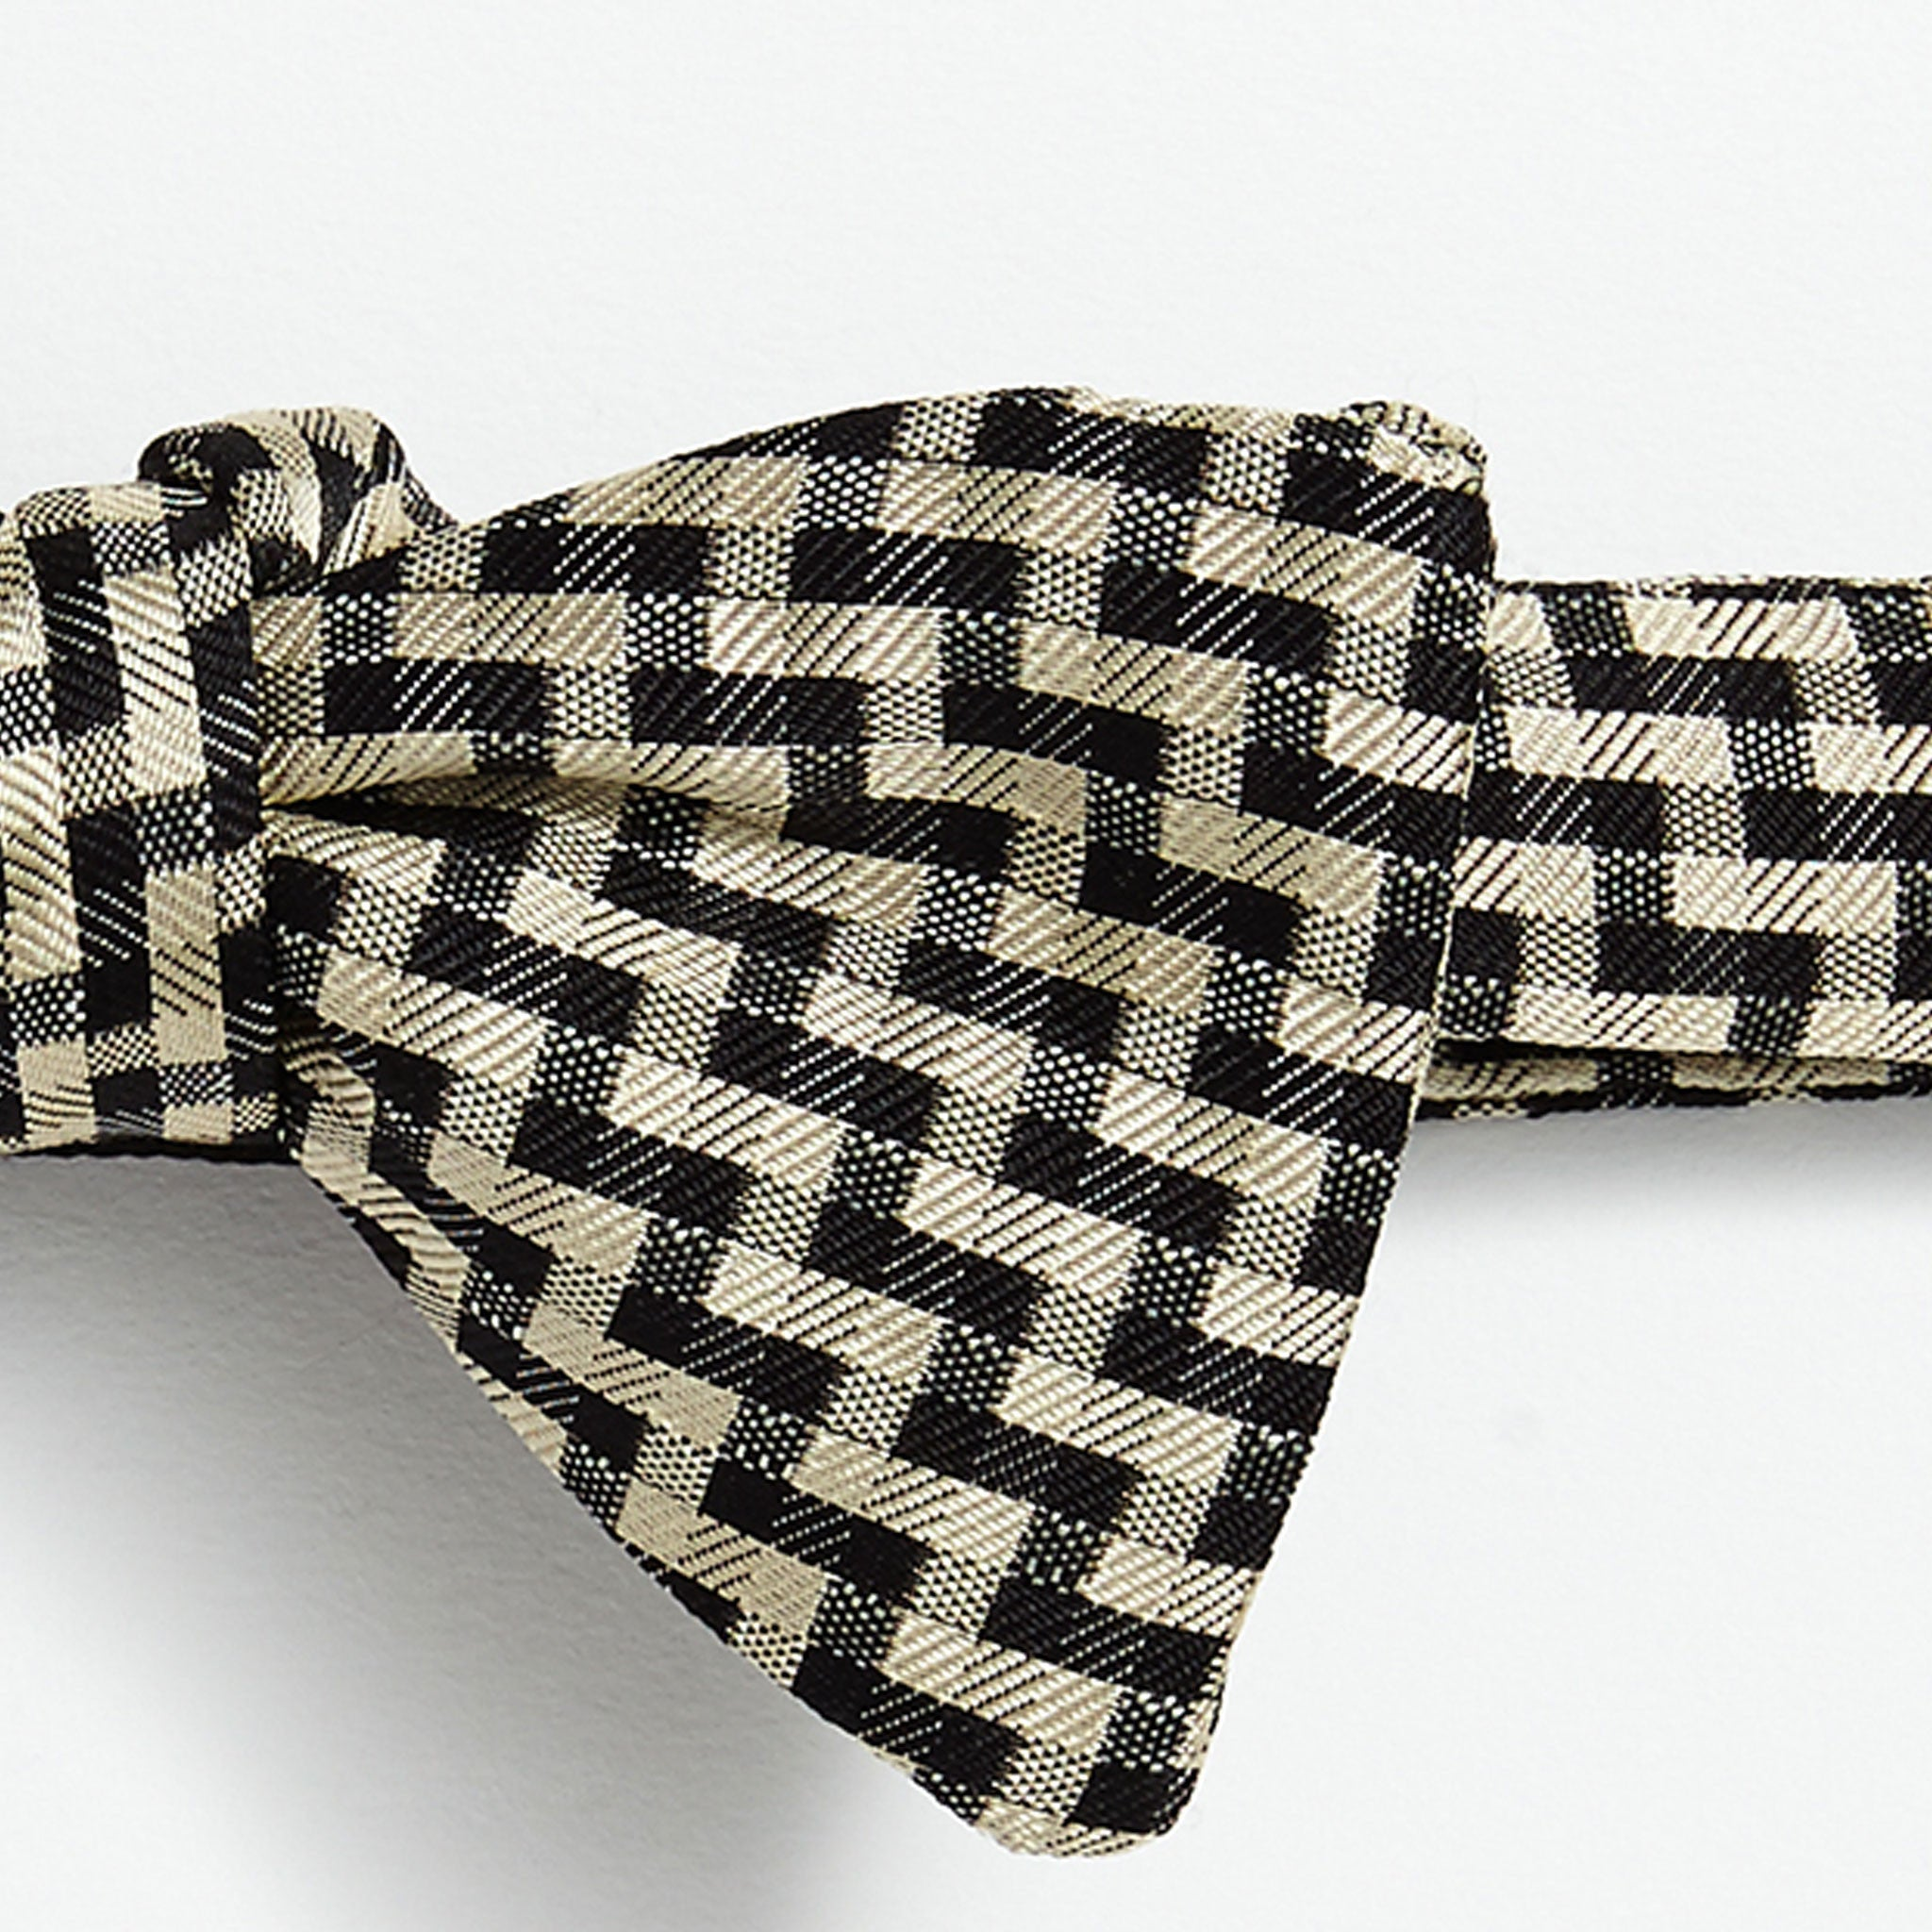 Staircase Silk Self-Tie Bow Tie